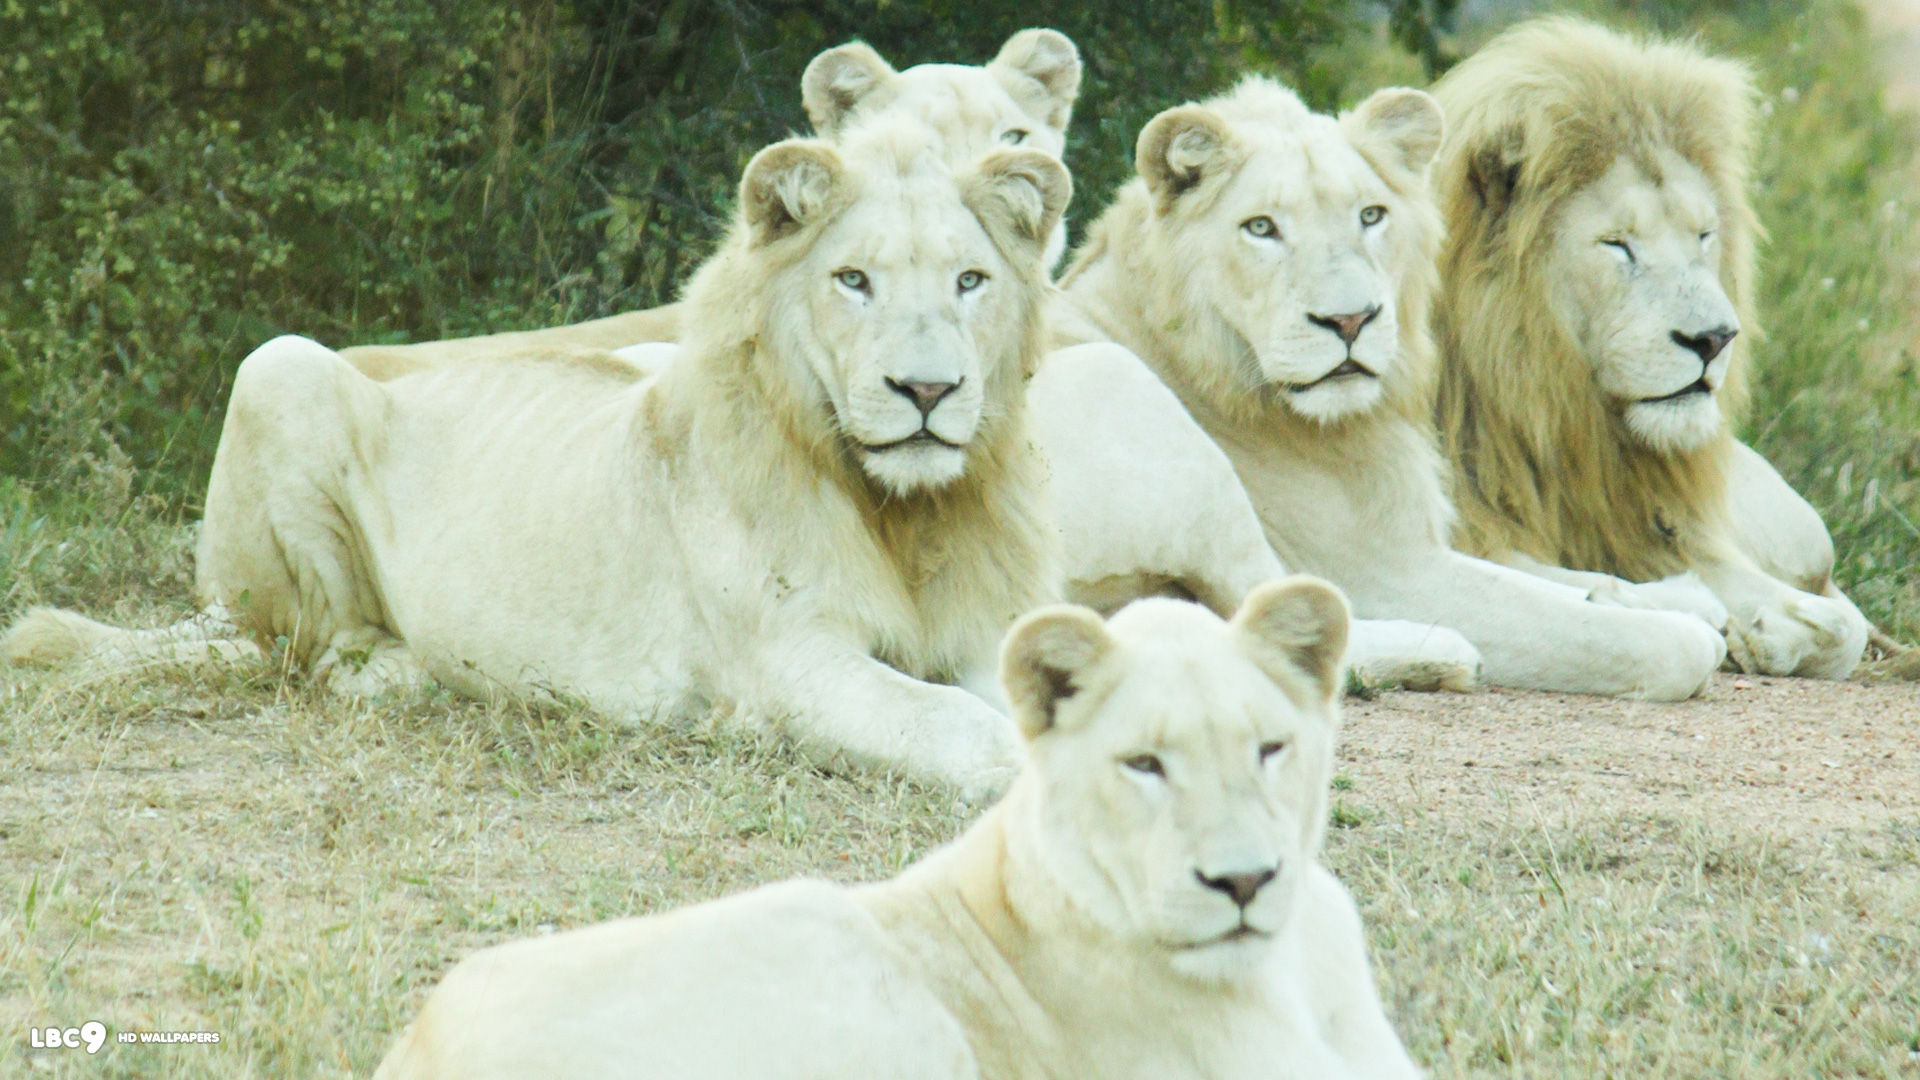 White Lion Hd Wallpapers Amazing Wallpaperz 1920x1080